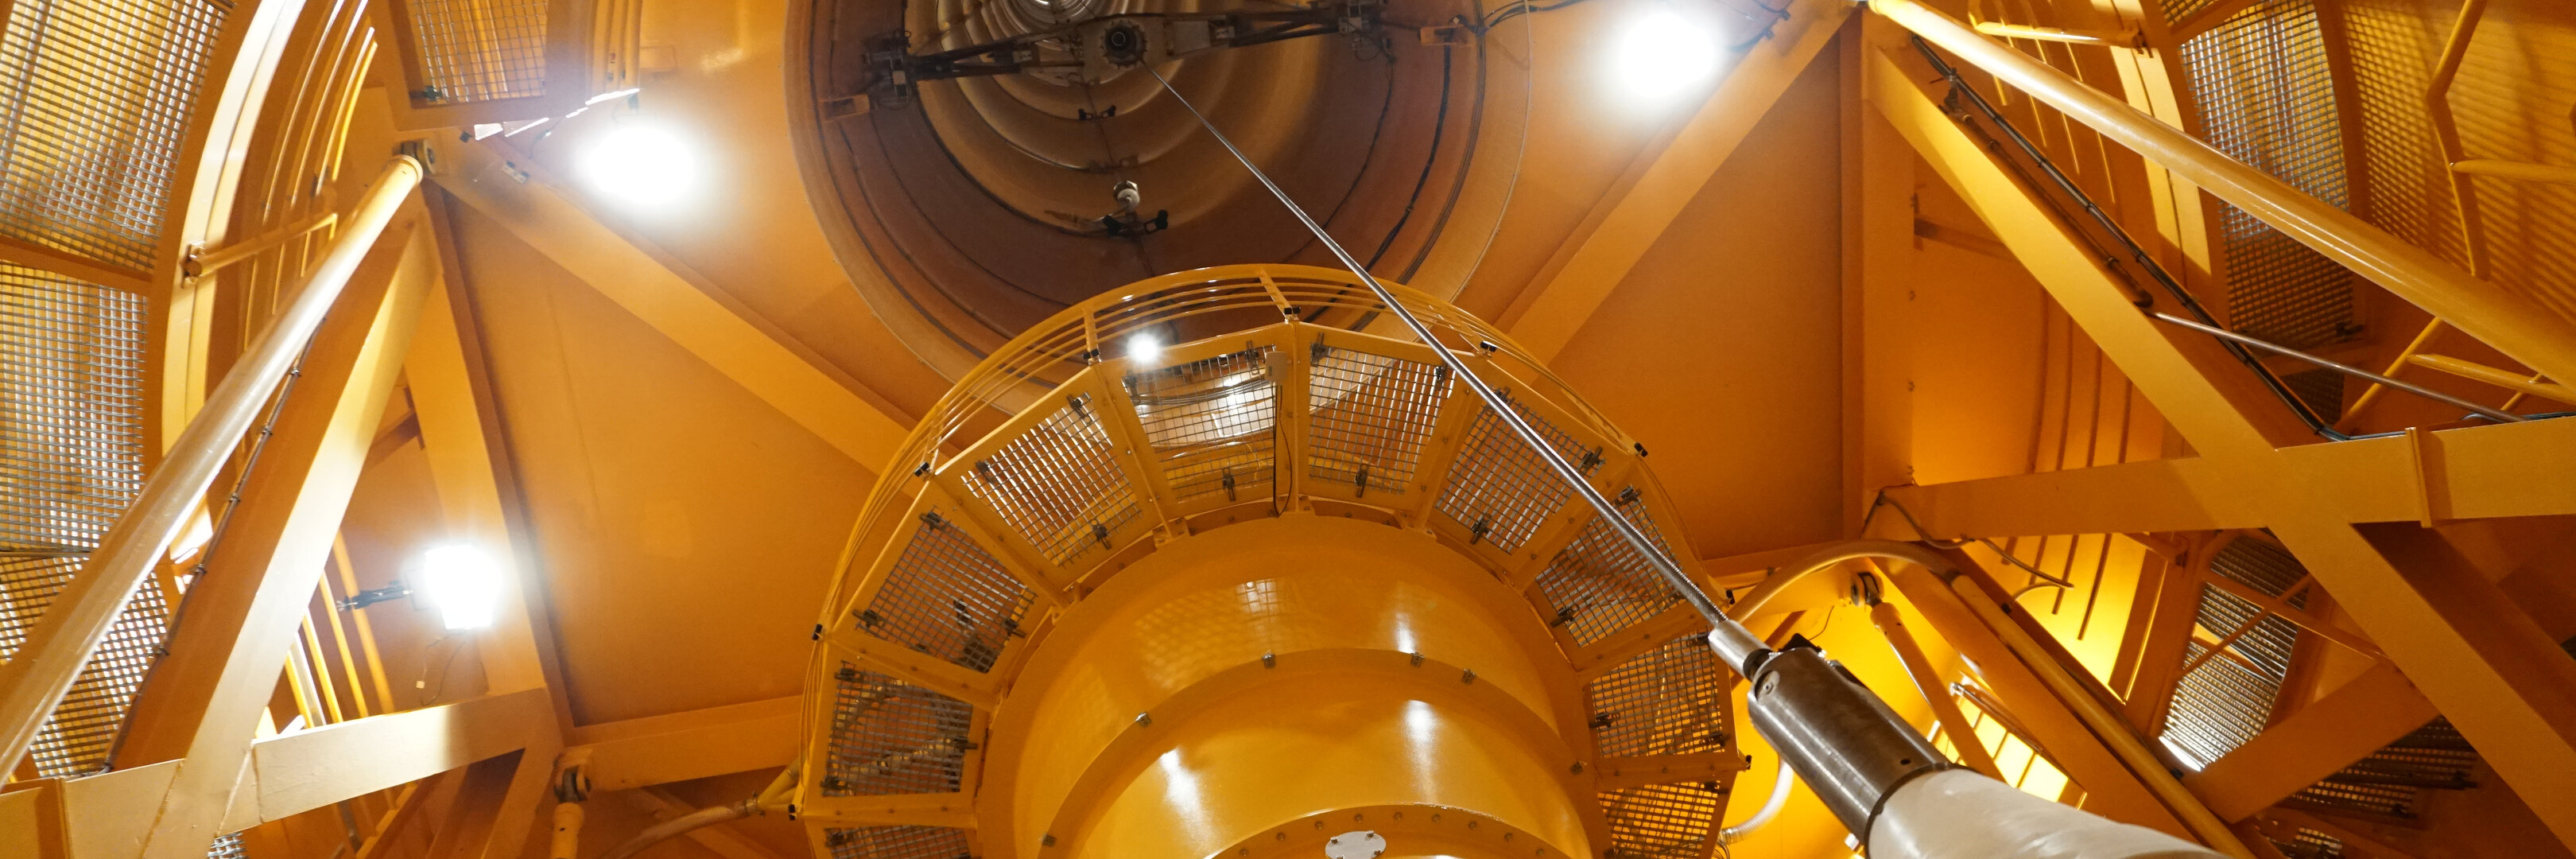 Inside the ZARM drop tower